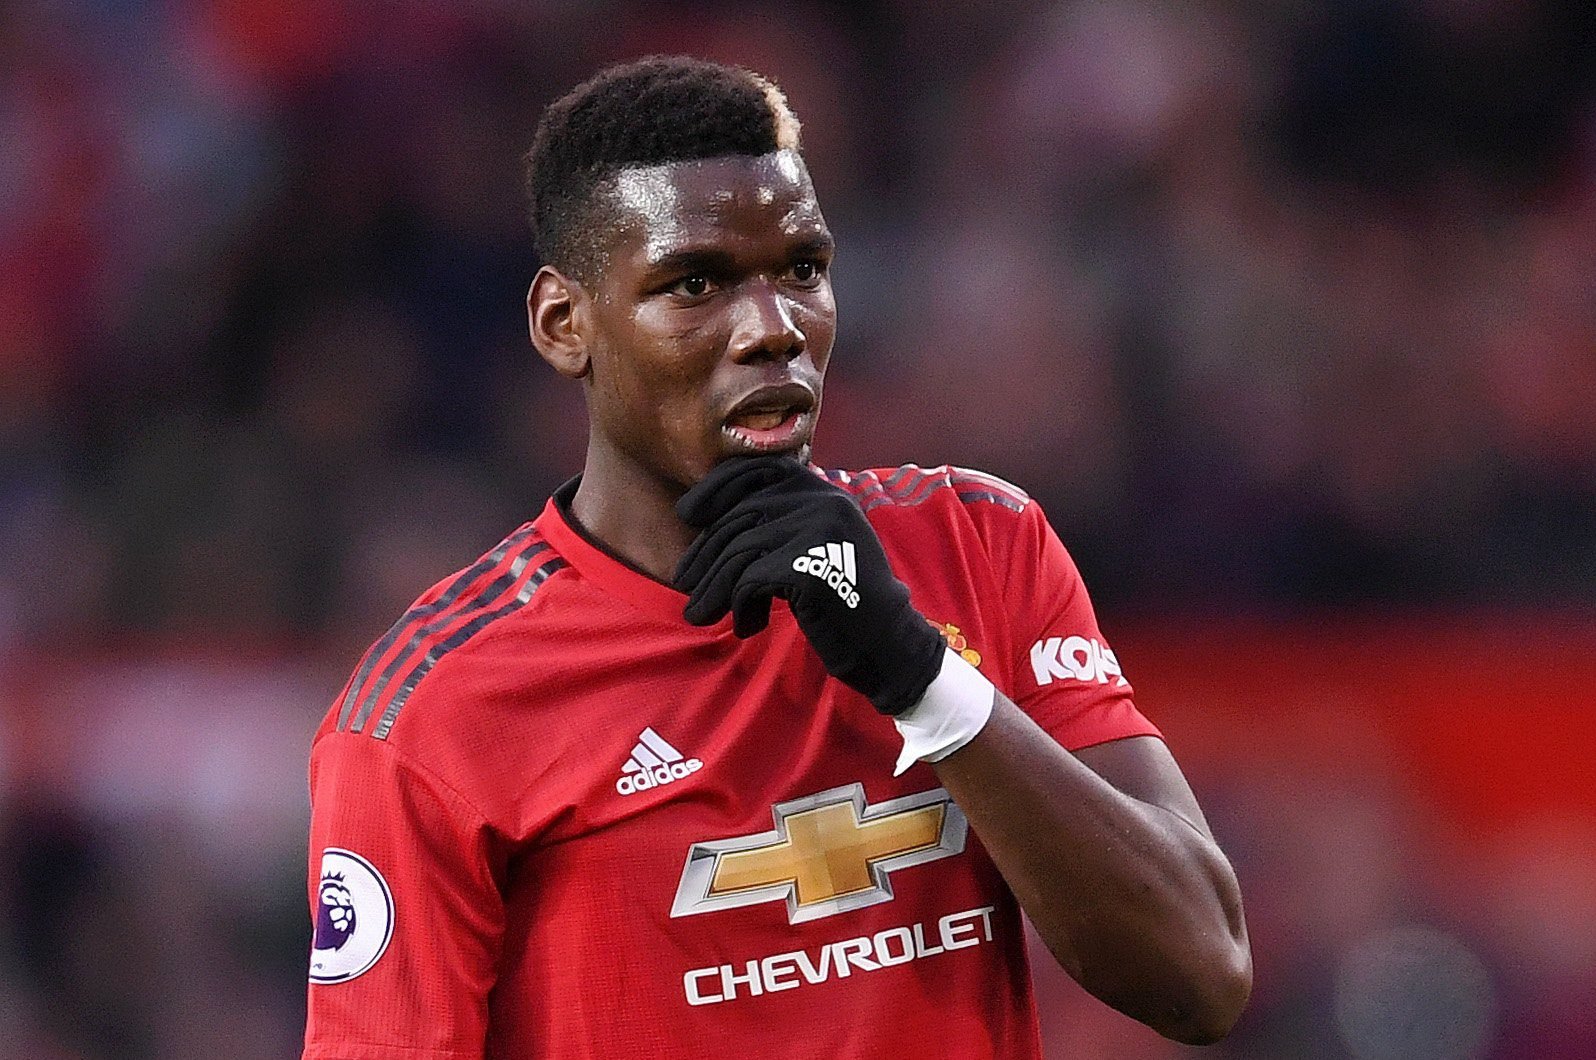 Jose Mourinho told Paul Pogba to play like Frank Lampard before his Manchester United exit